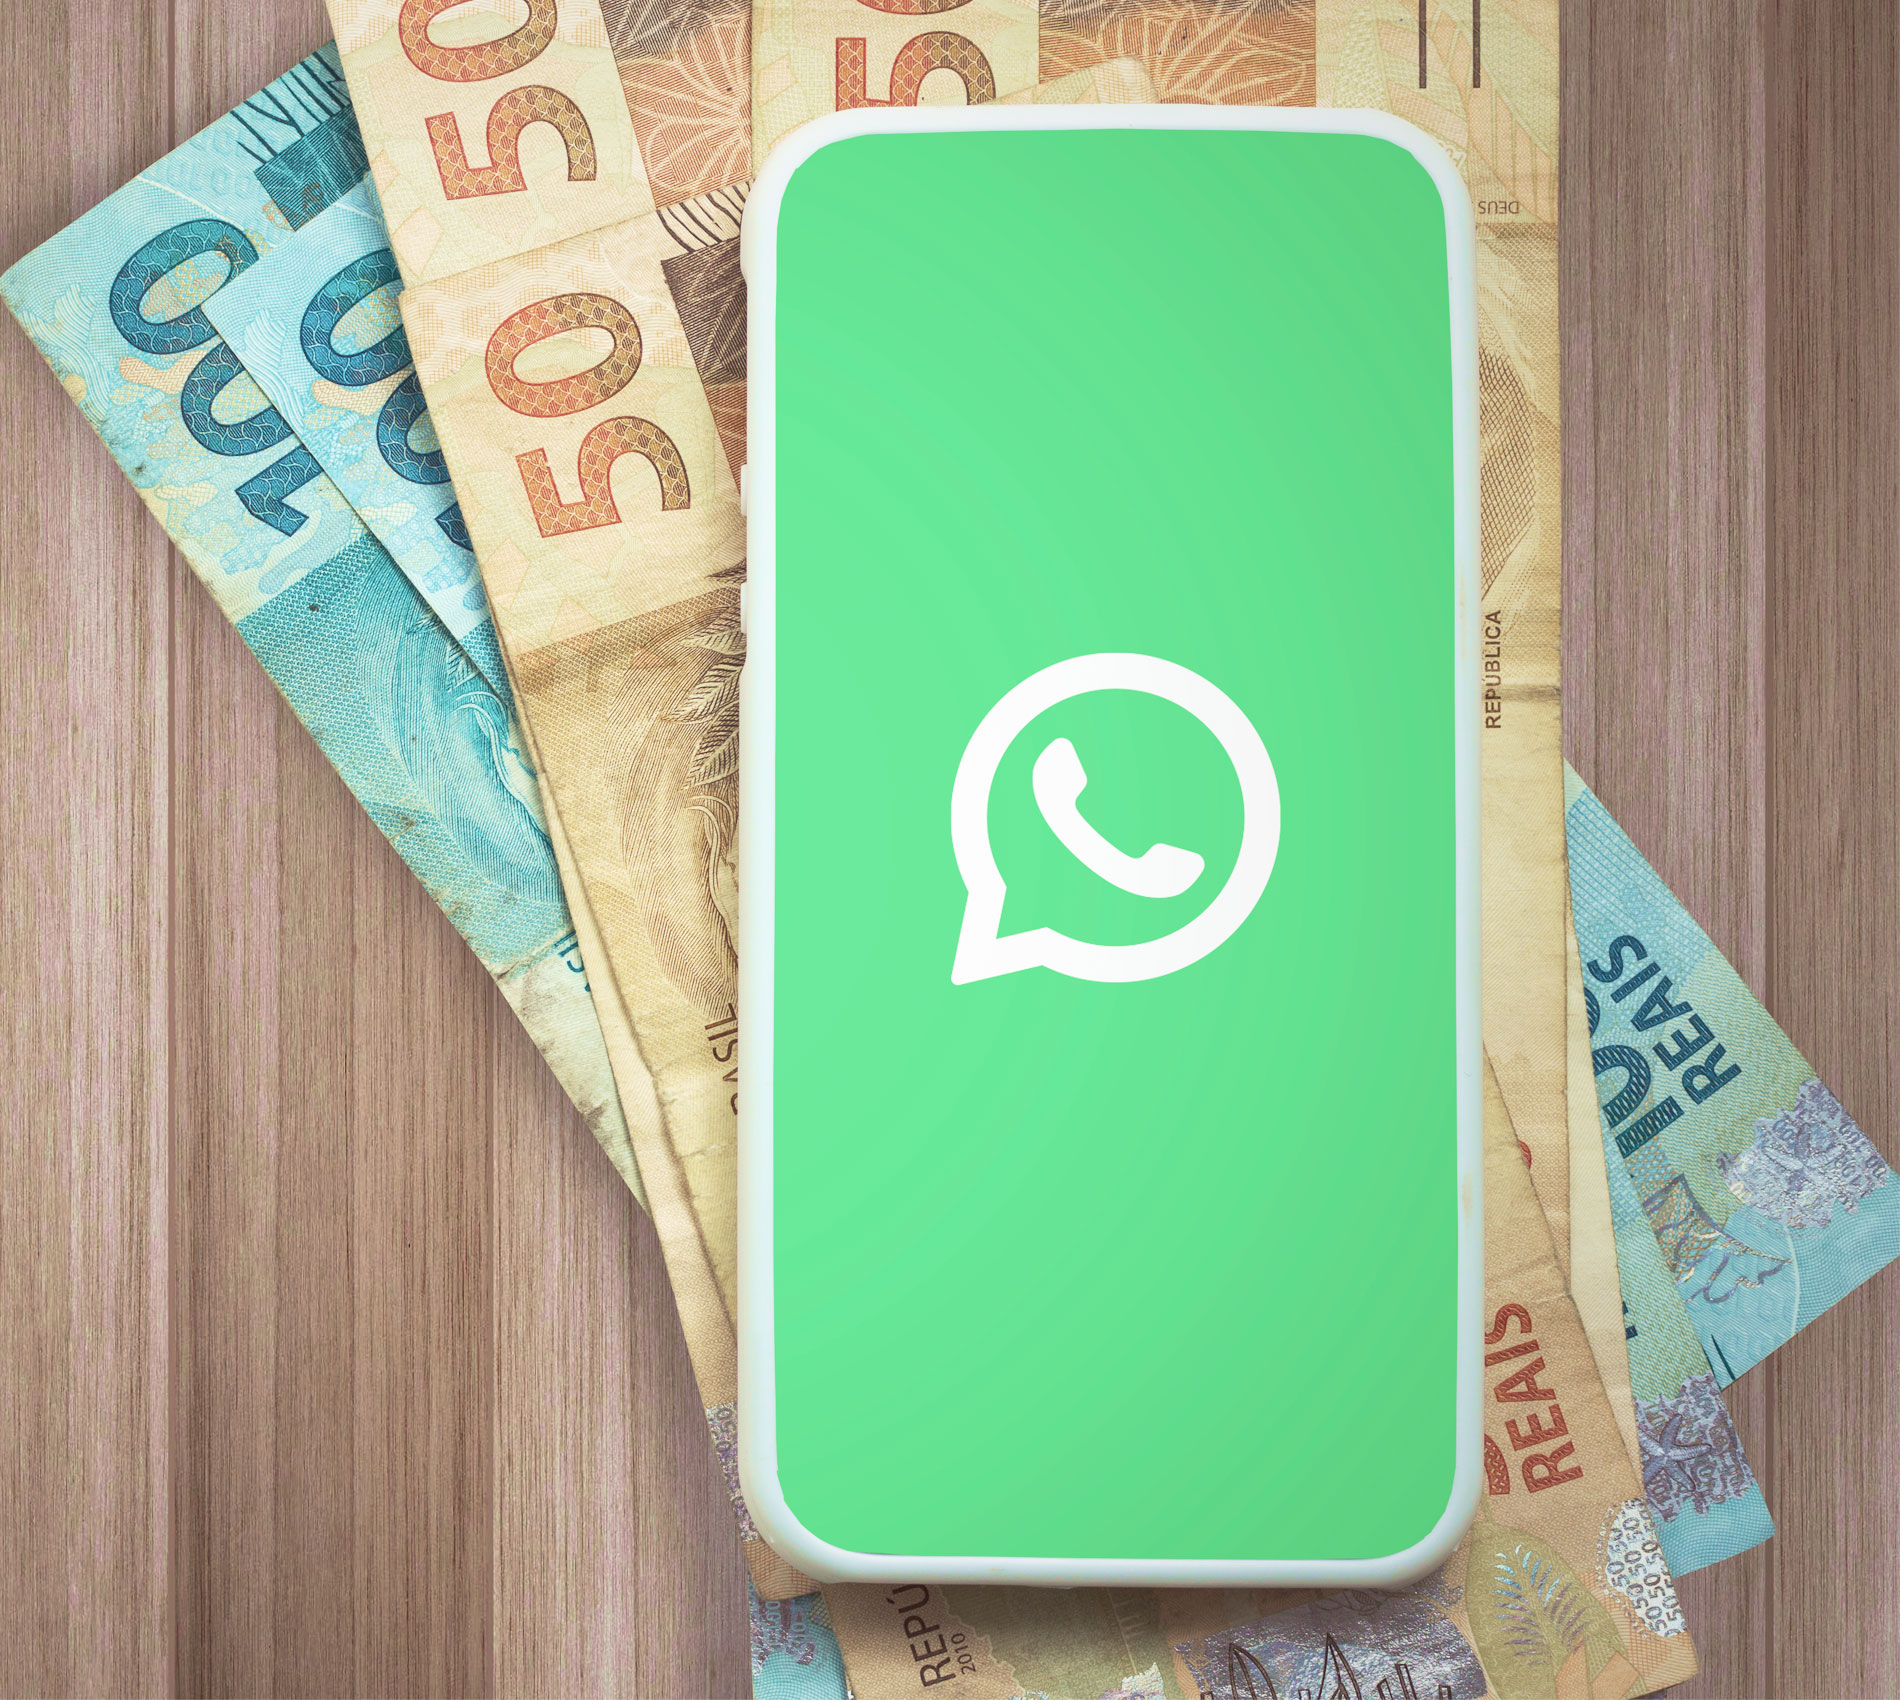 It's official: WhatsApp Pay is launched in Brazil